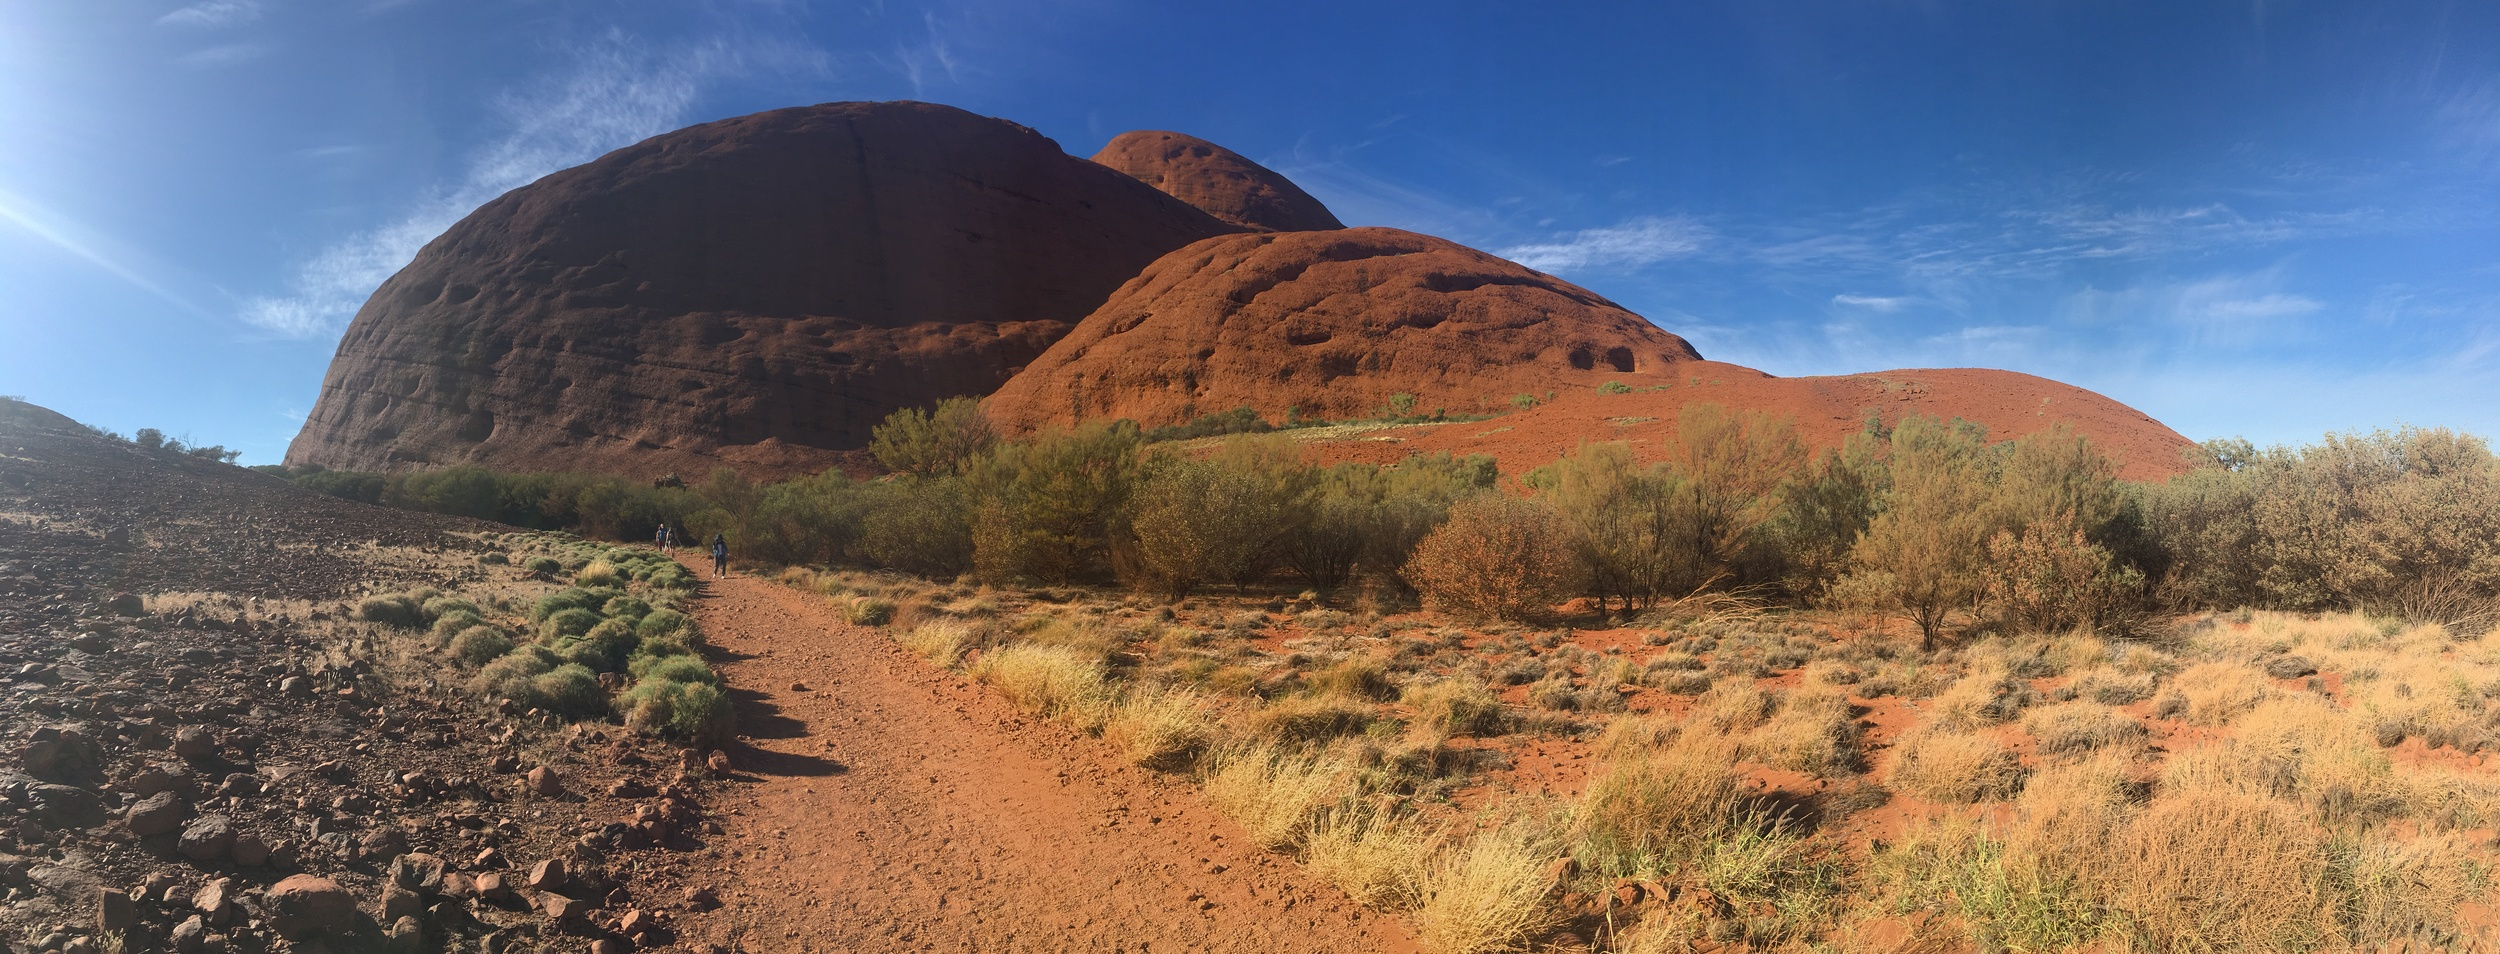 Walking into Kata Tjuta